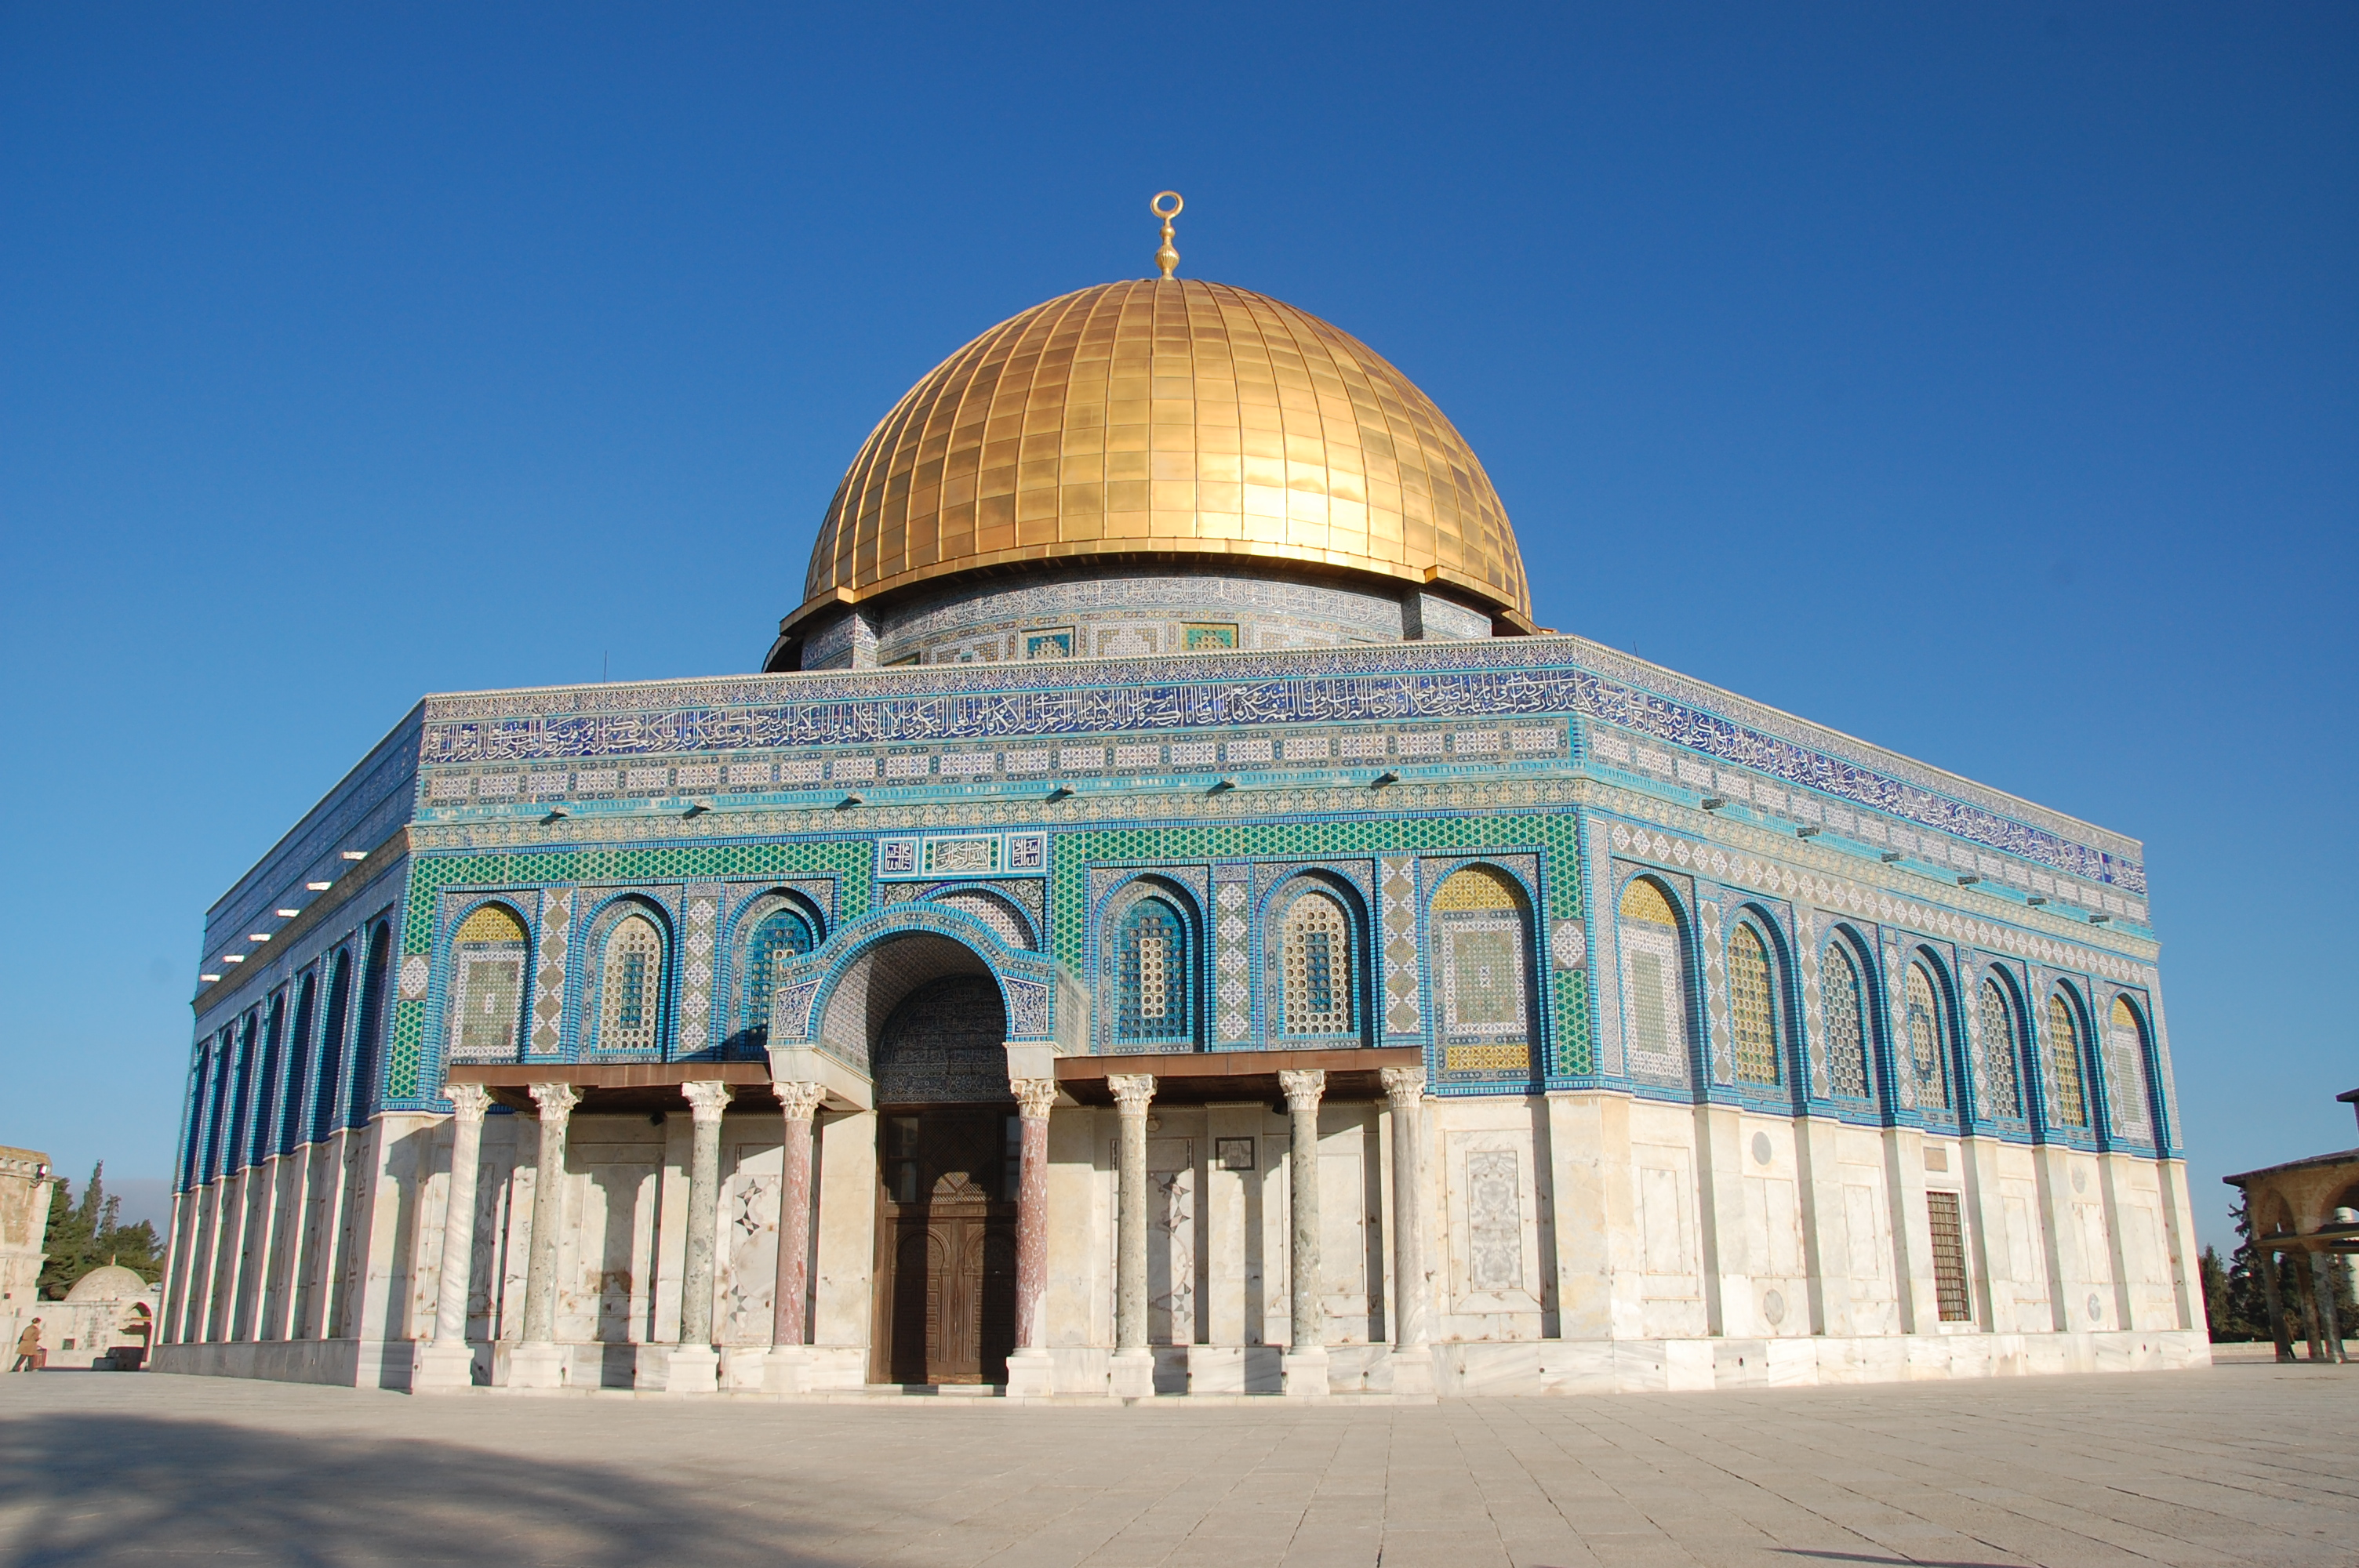 https://upload.wikimedia.org/wikipedia/commons/7/7d/Temple_Mount.JPG